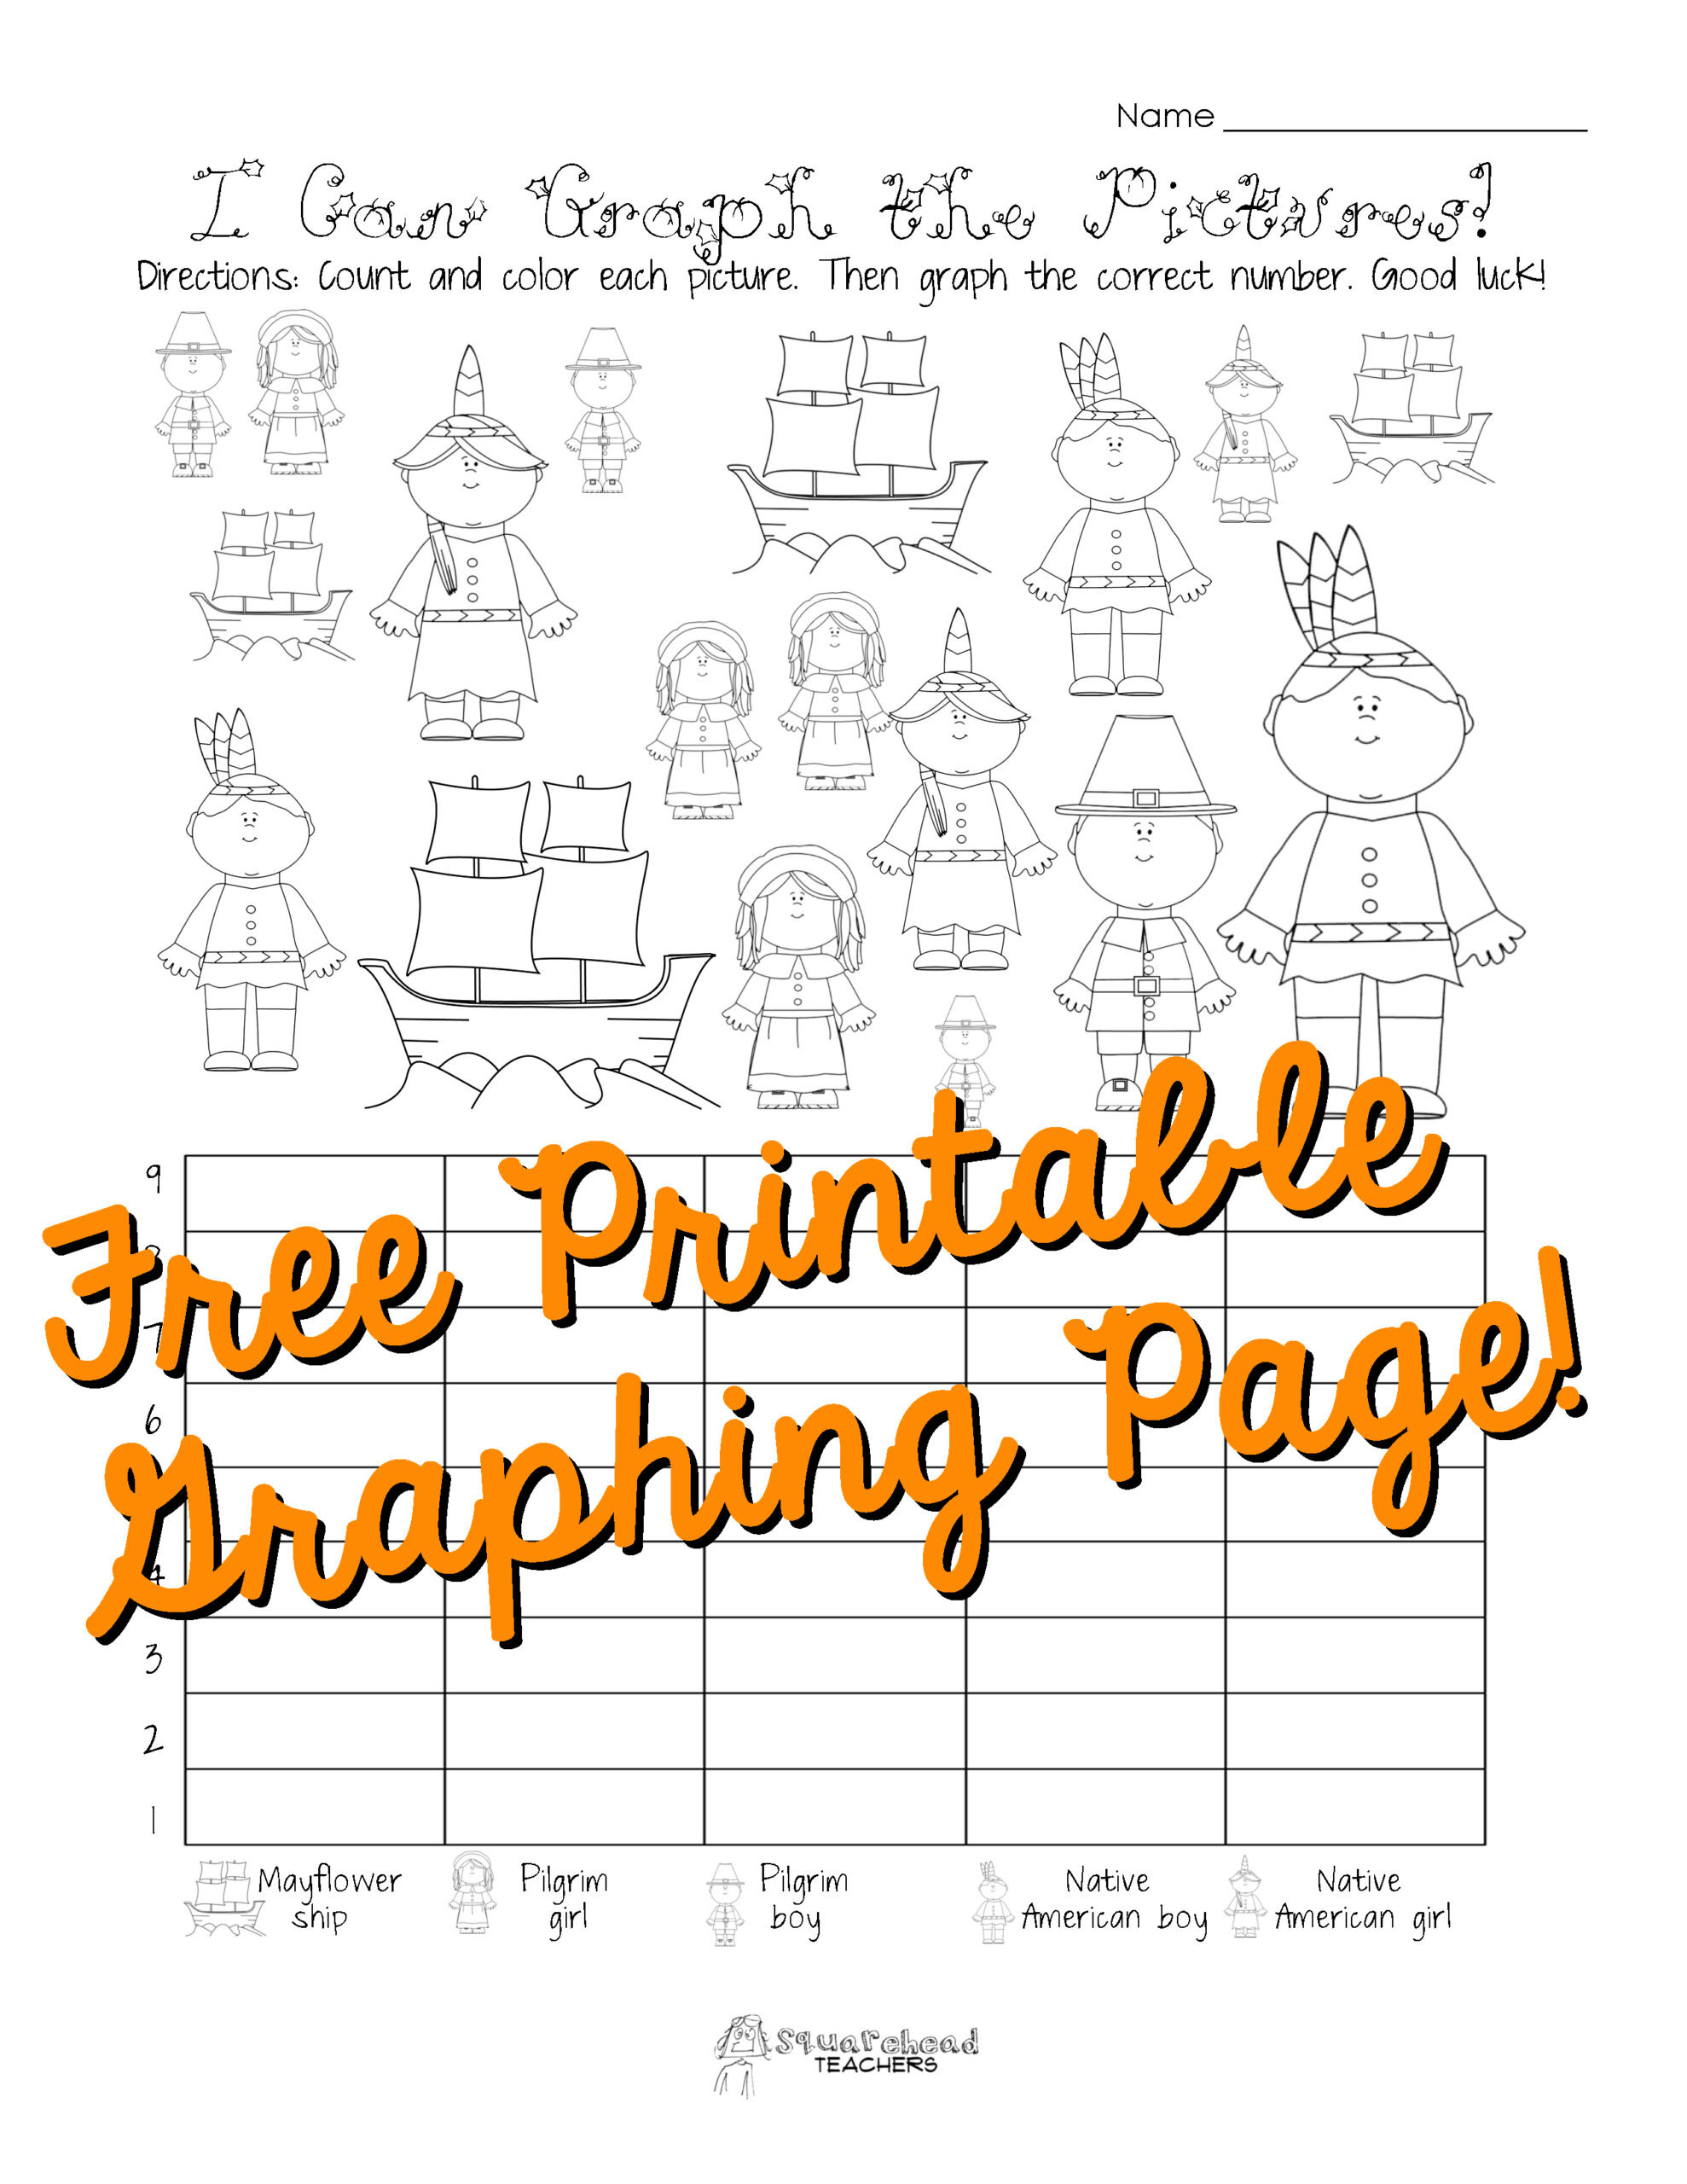 Thanksgiving Math Worksheets Middle School Childrens Math Sheets Hard Word Searches Printable